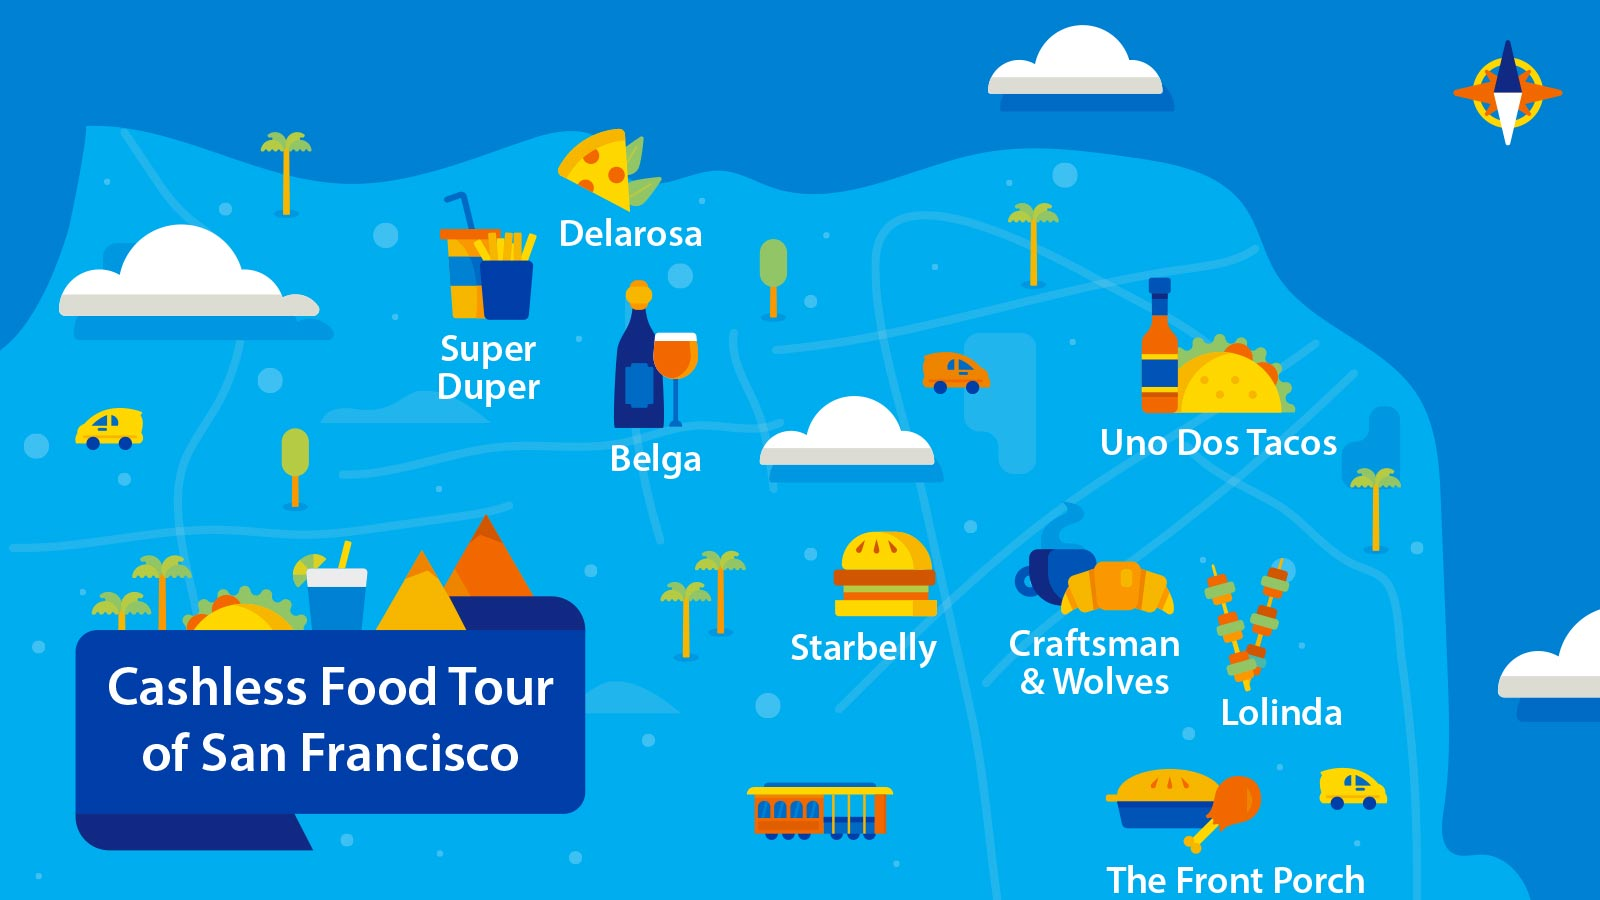 sf-cashless-food-tour-map-1600x900